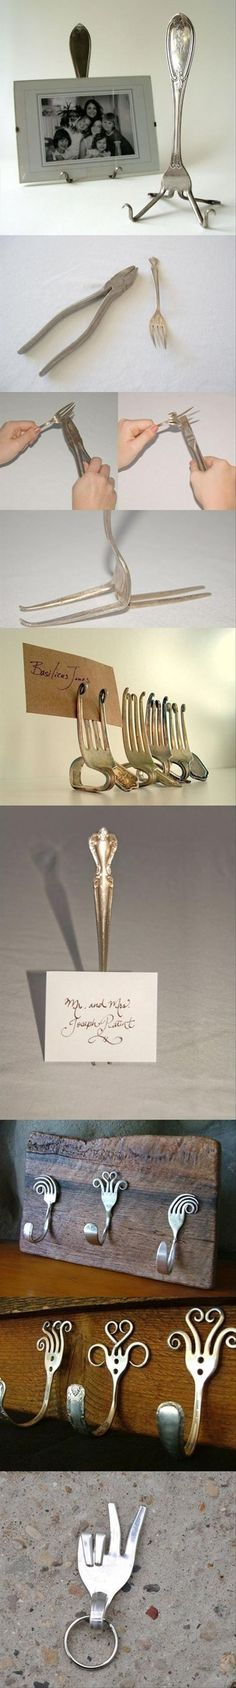 old silverware uses